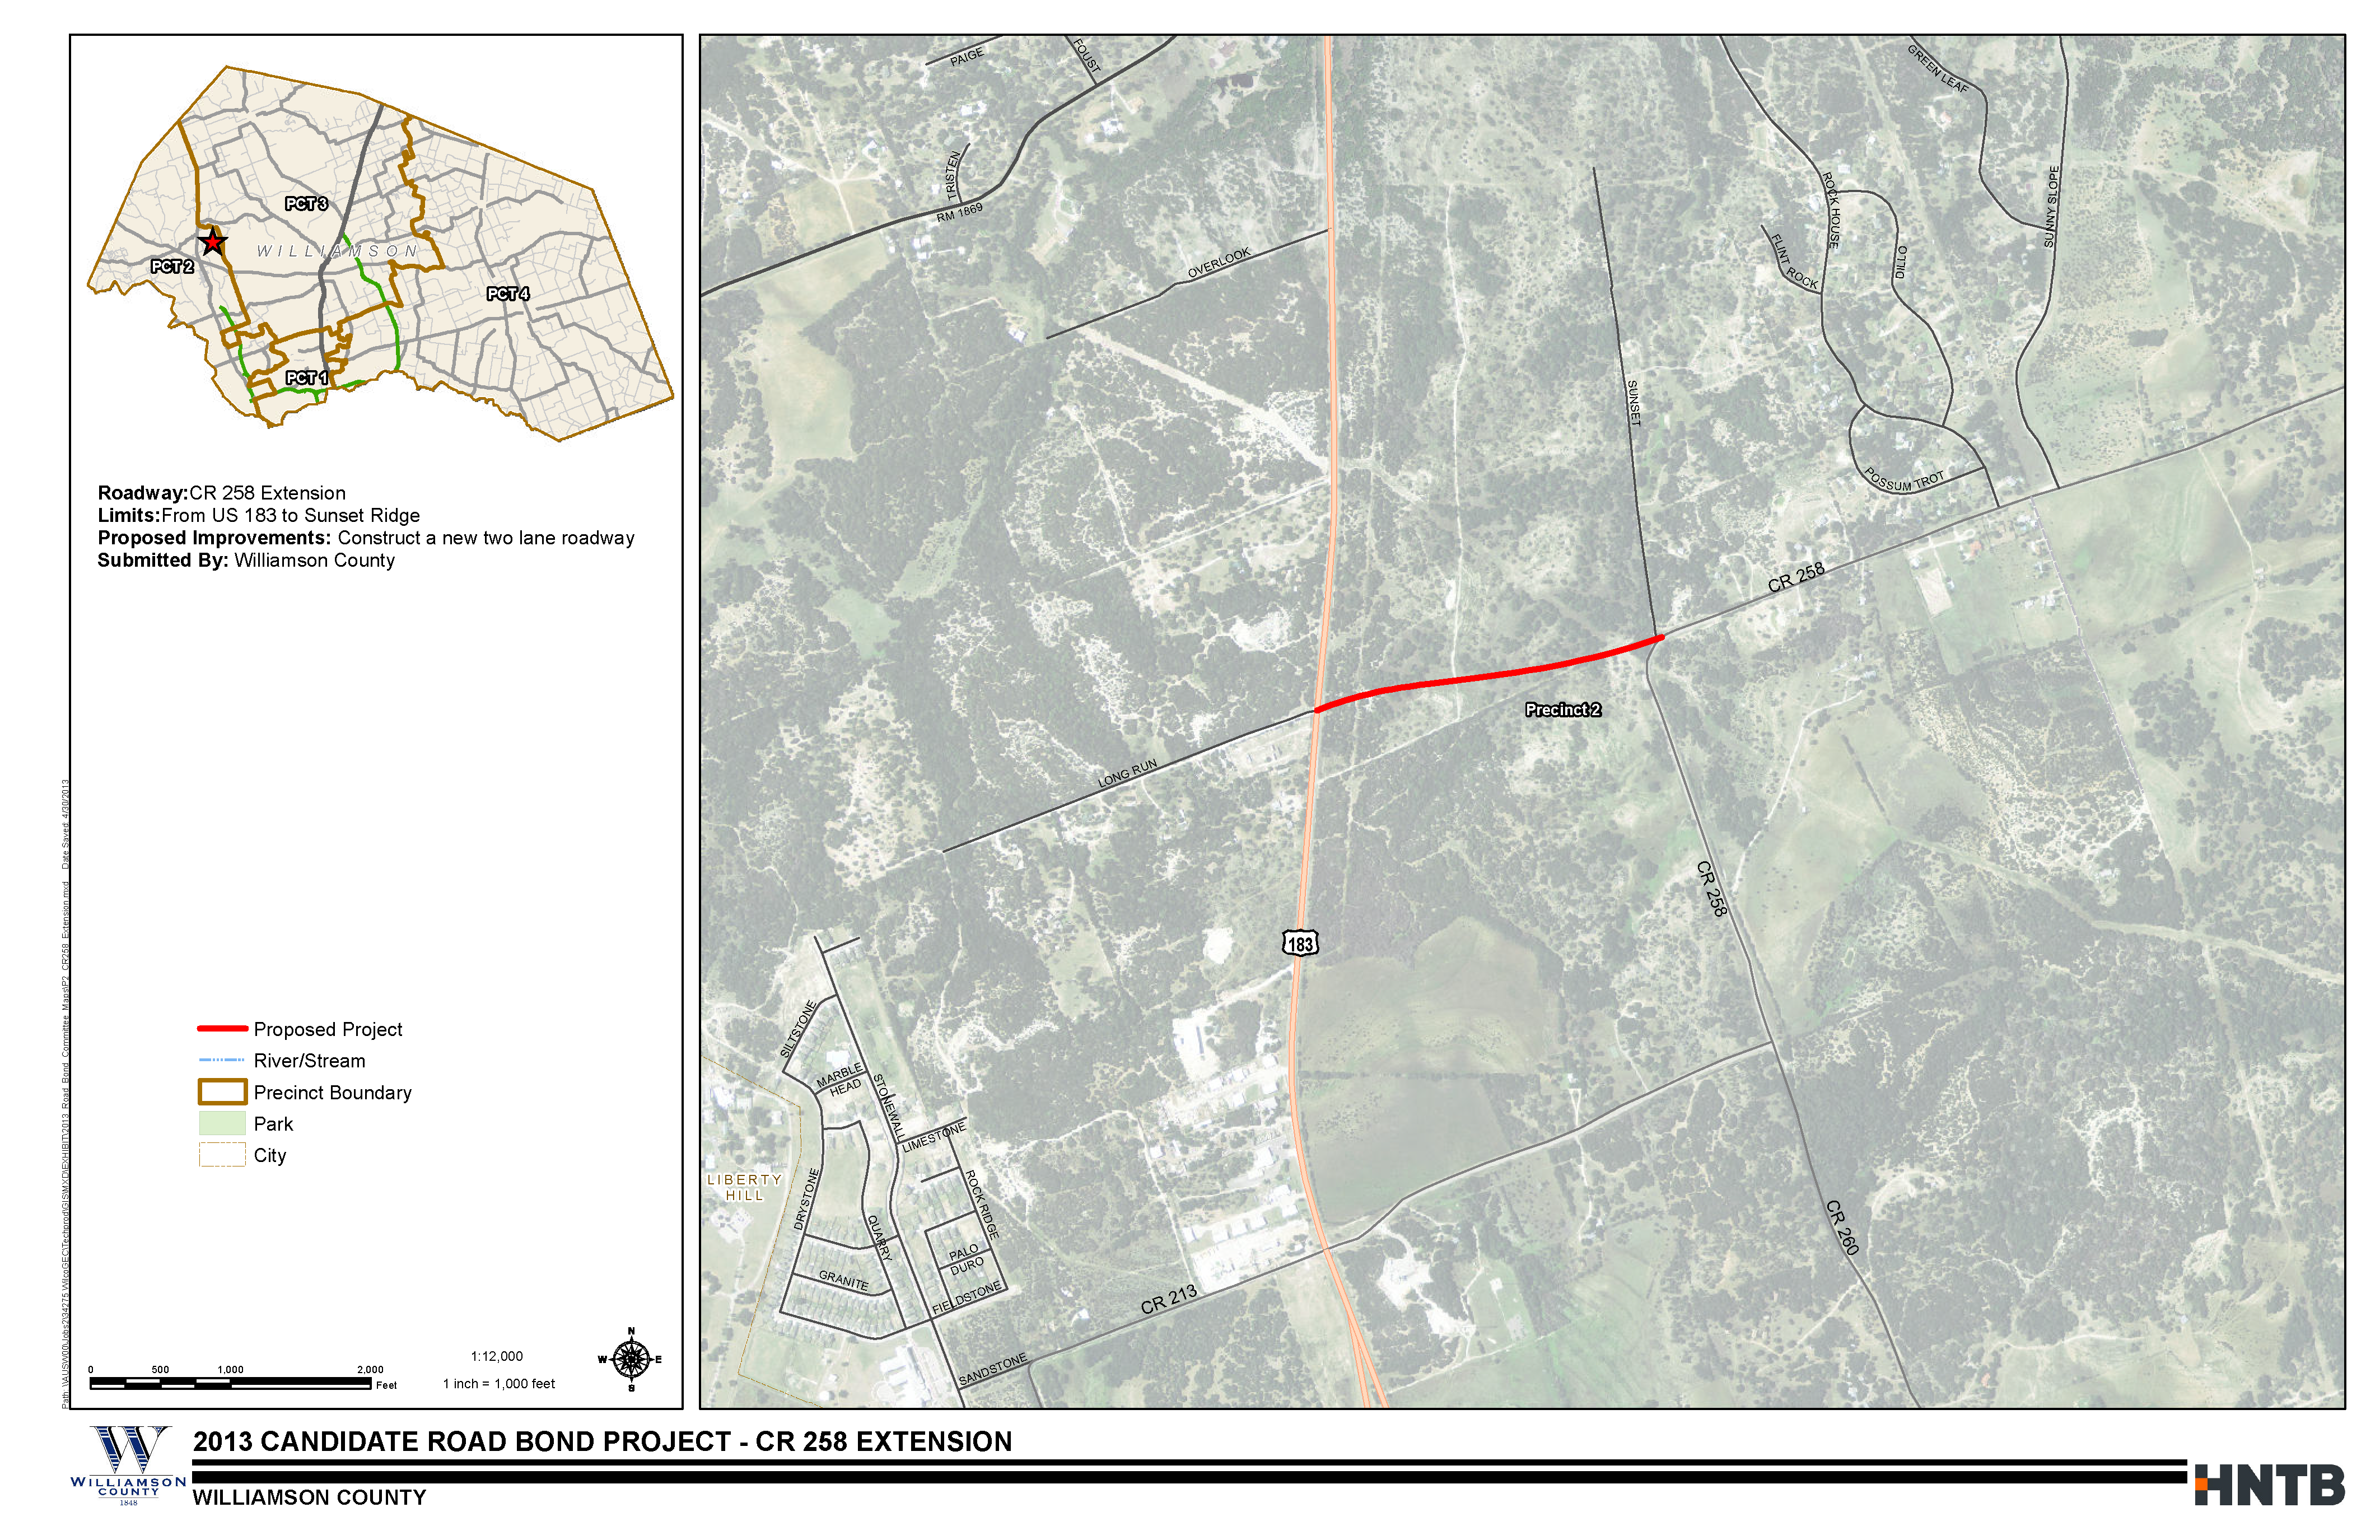 CR 258 Extension Project Map